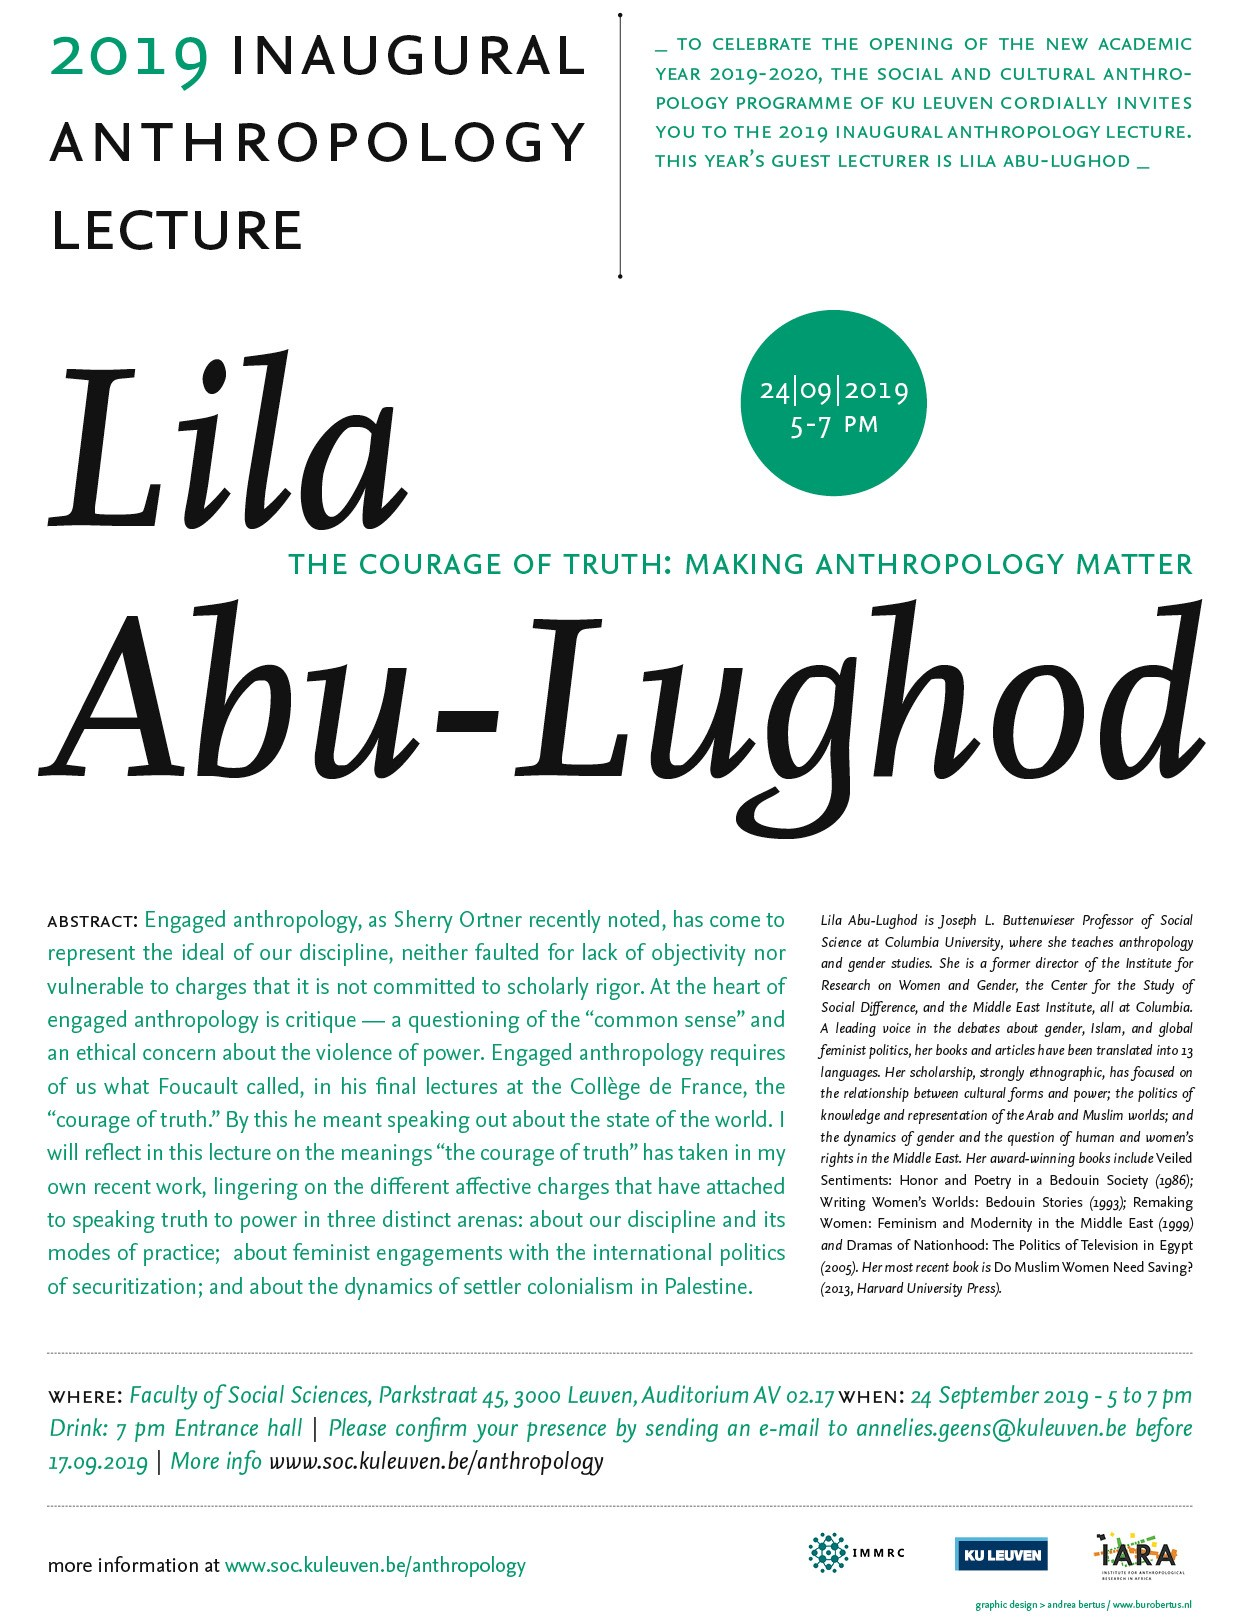 Event Poster for lecture